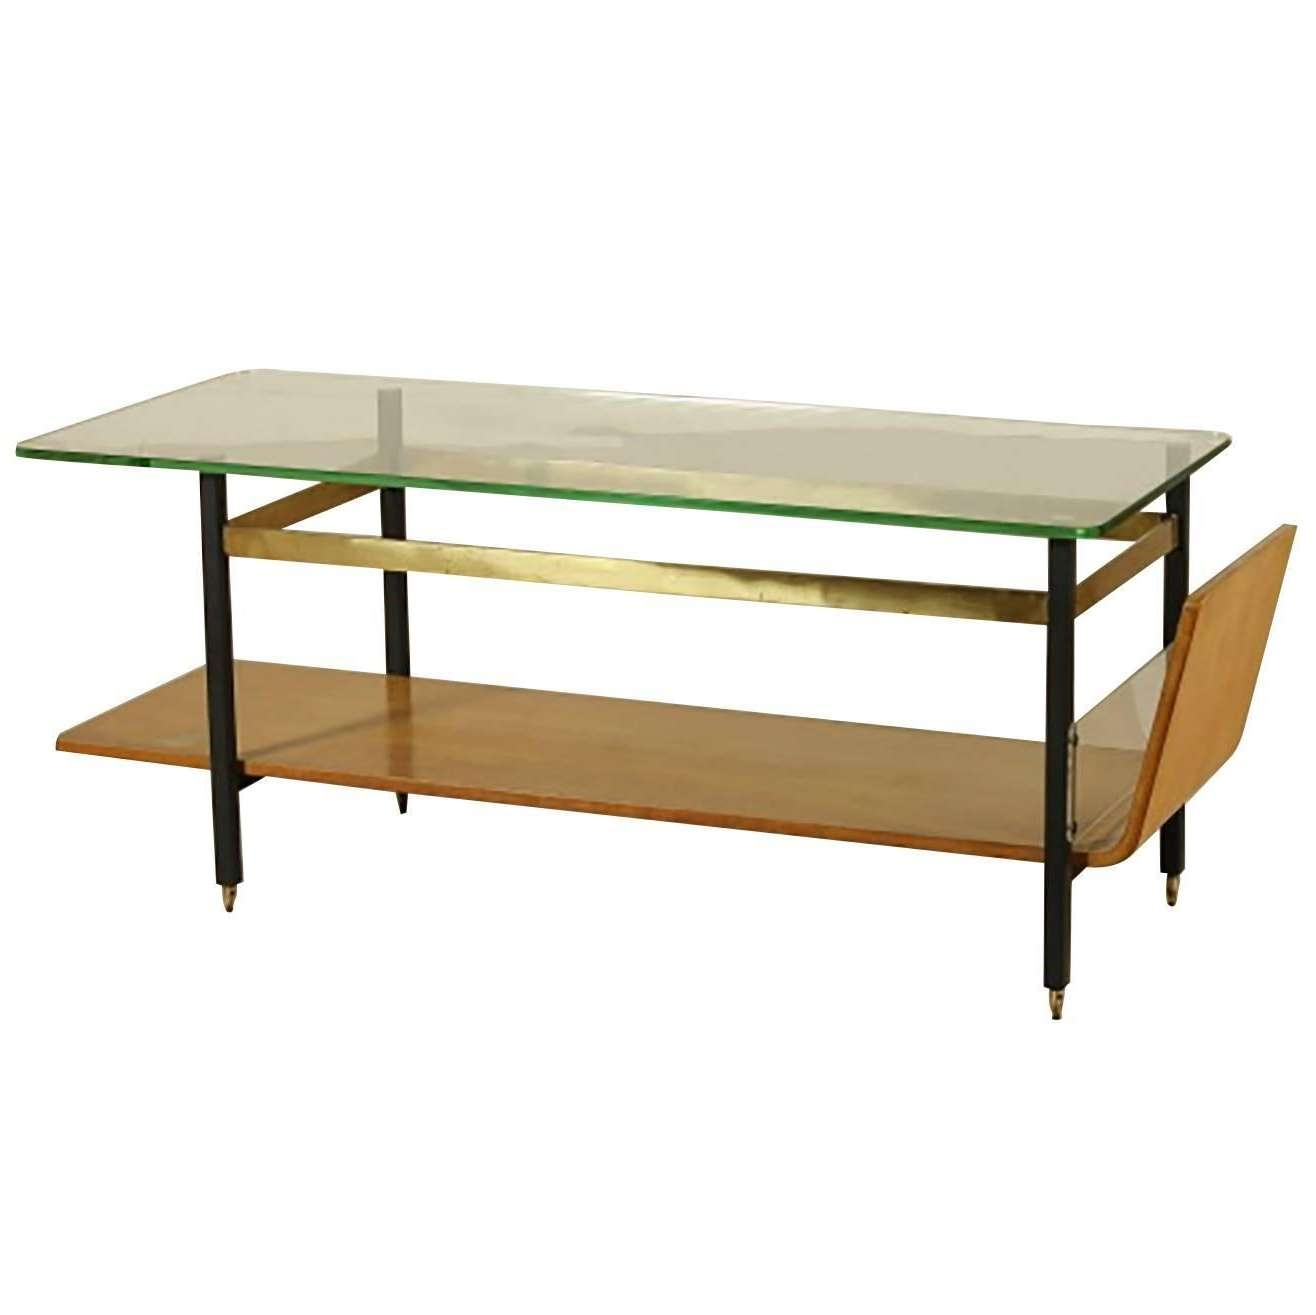 Newest Stylish Coffee Tables Throughout Italian Modern And Stylish Coffee Tablevito Latis Studio (View 16 of 20)